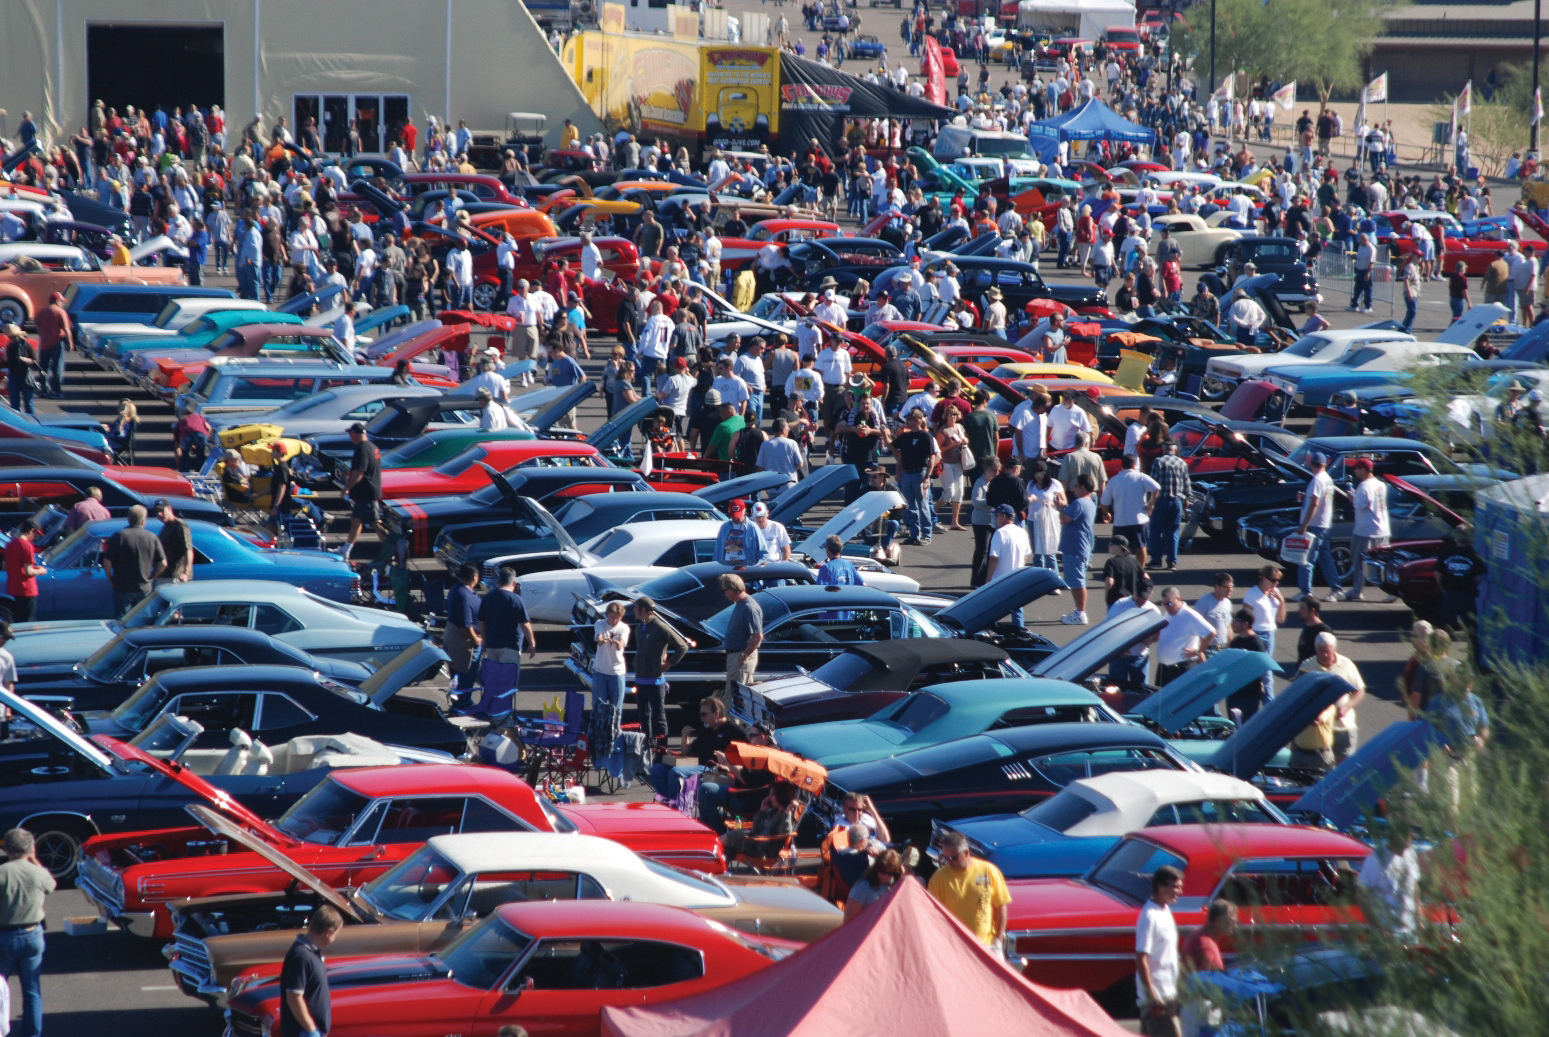 Goodguys St Annual Southwest Nationals - Scottsdale car show today